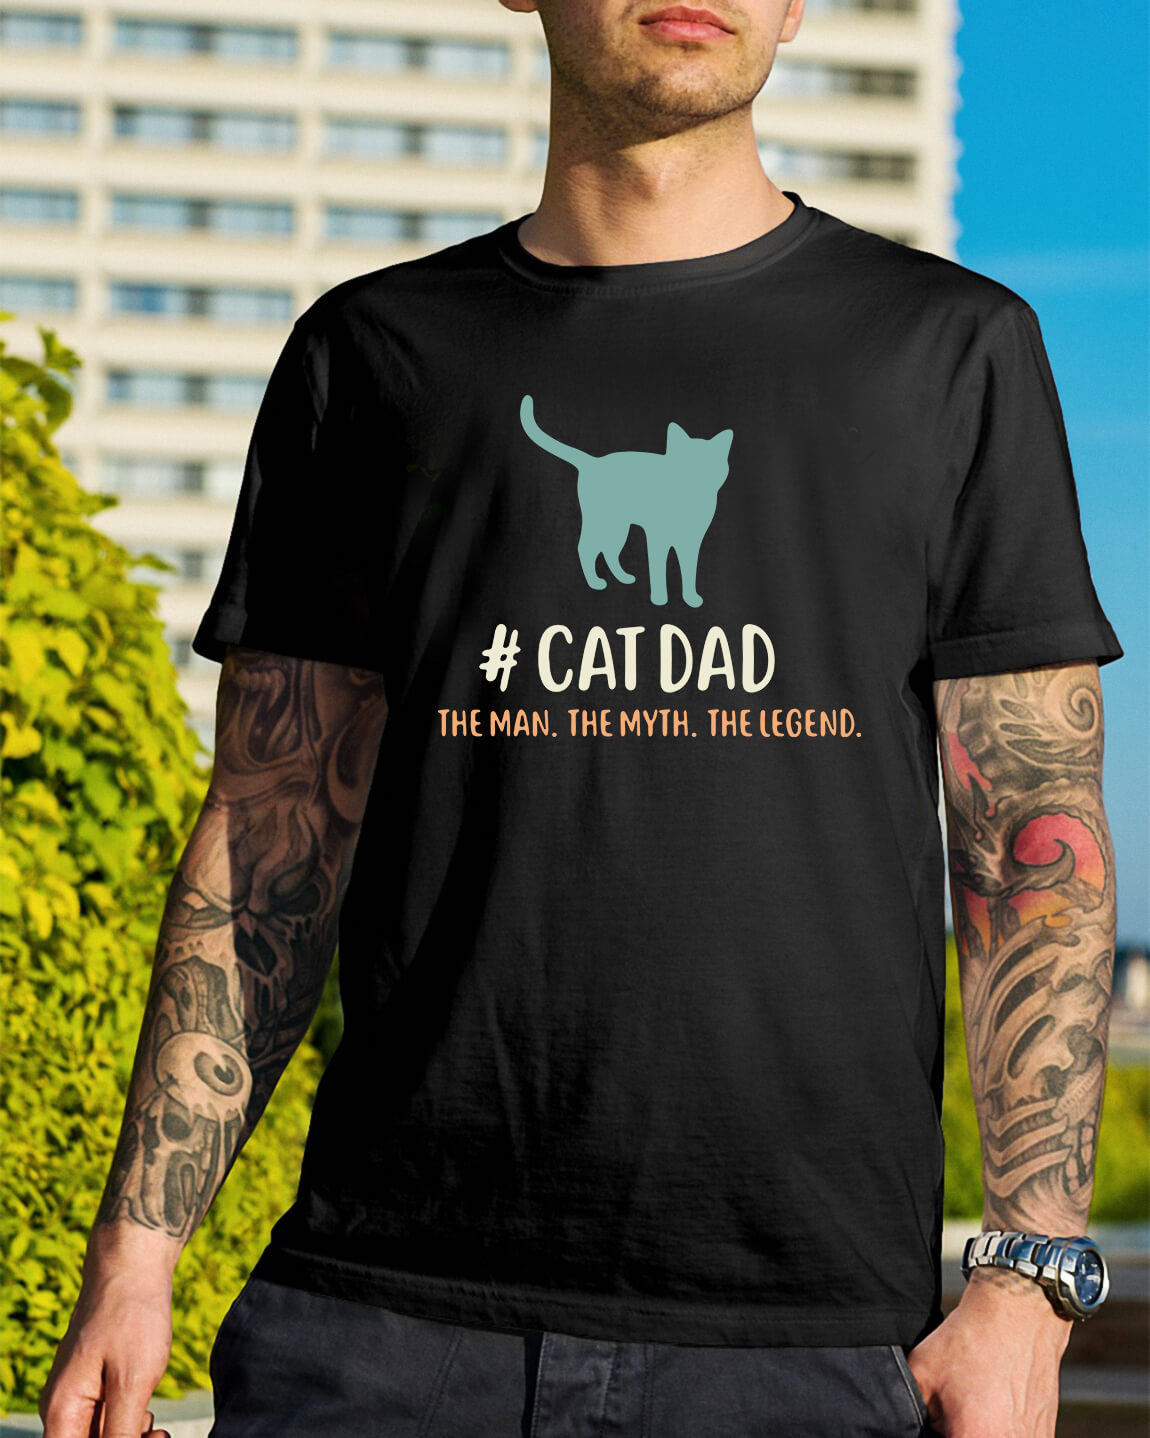 0ff2512a0 Cat dad the man the myth the legend shirt, hoodie, sweater